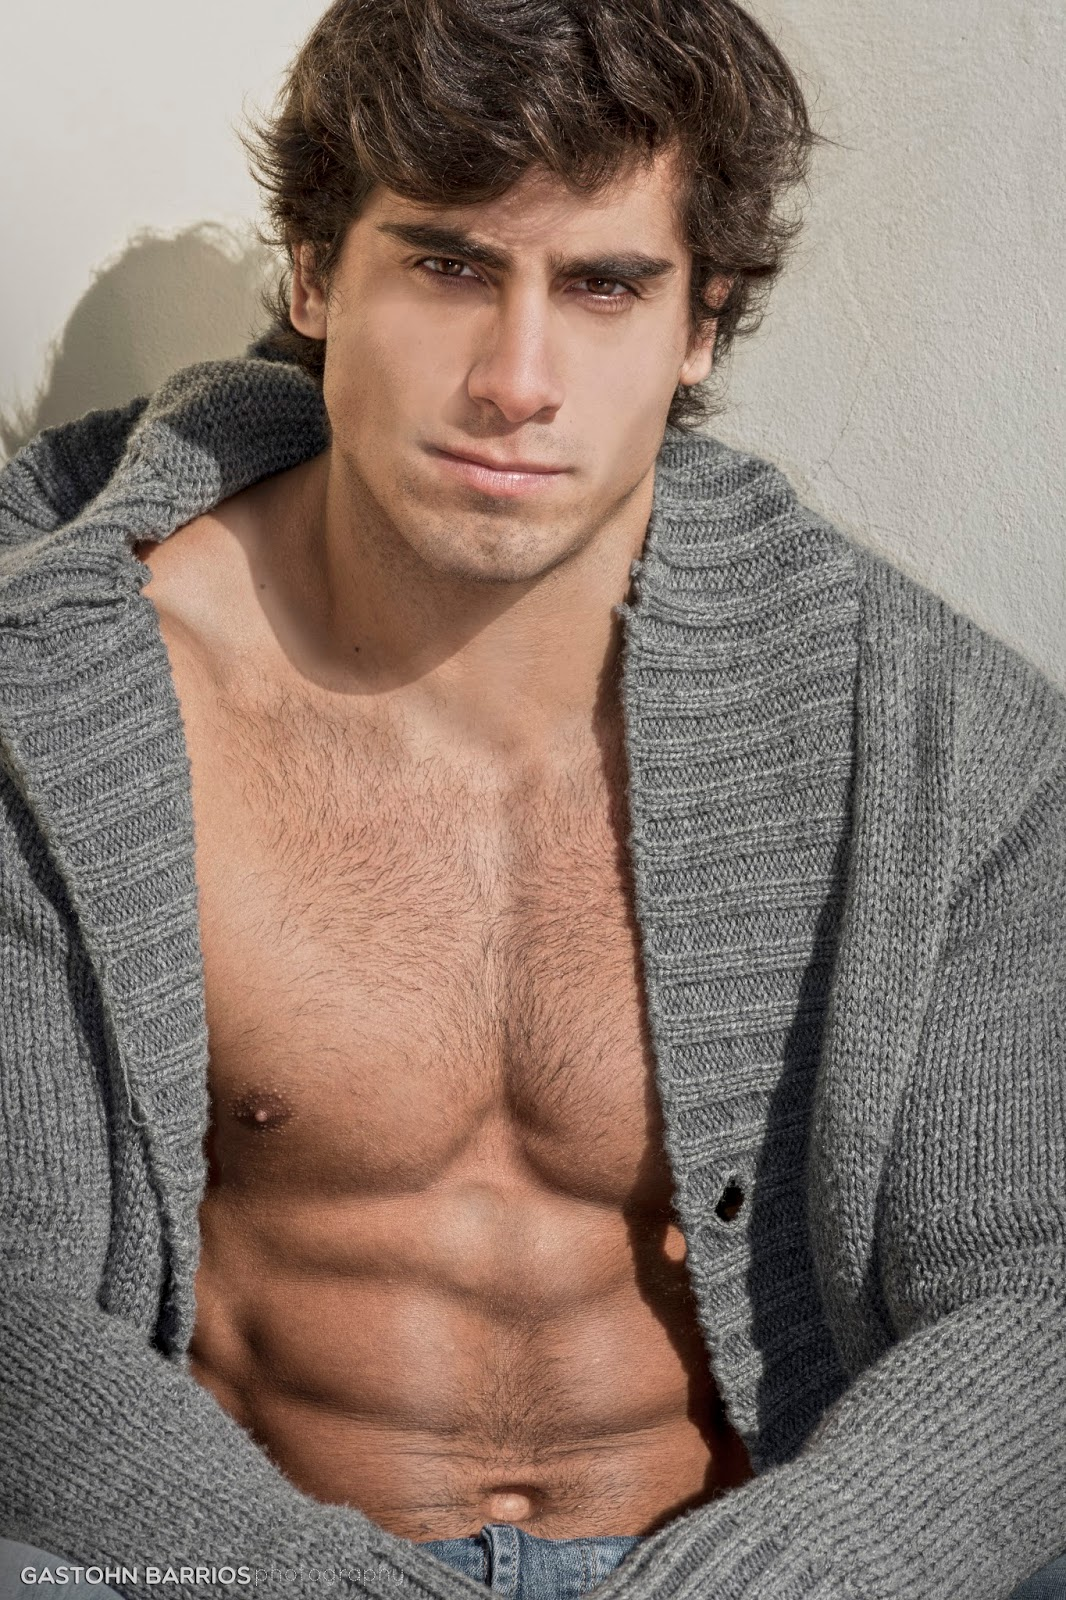 Thomas Cabre by Gastohn Barrios